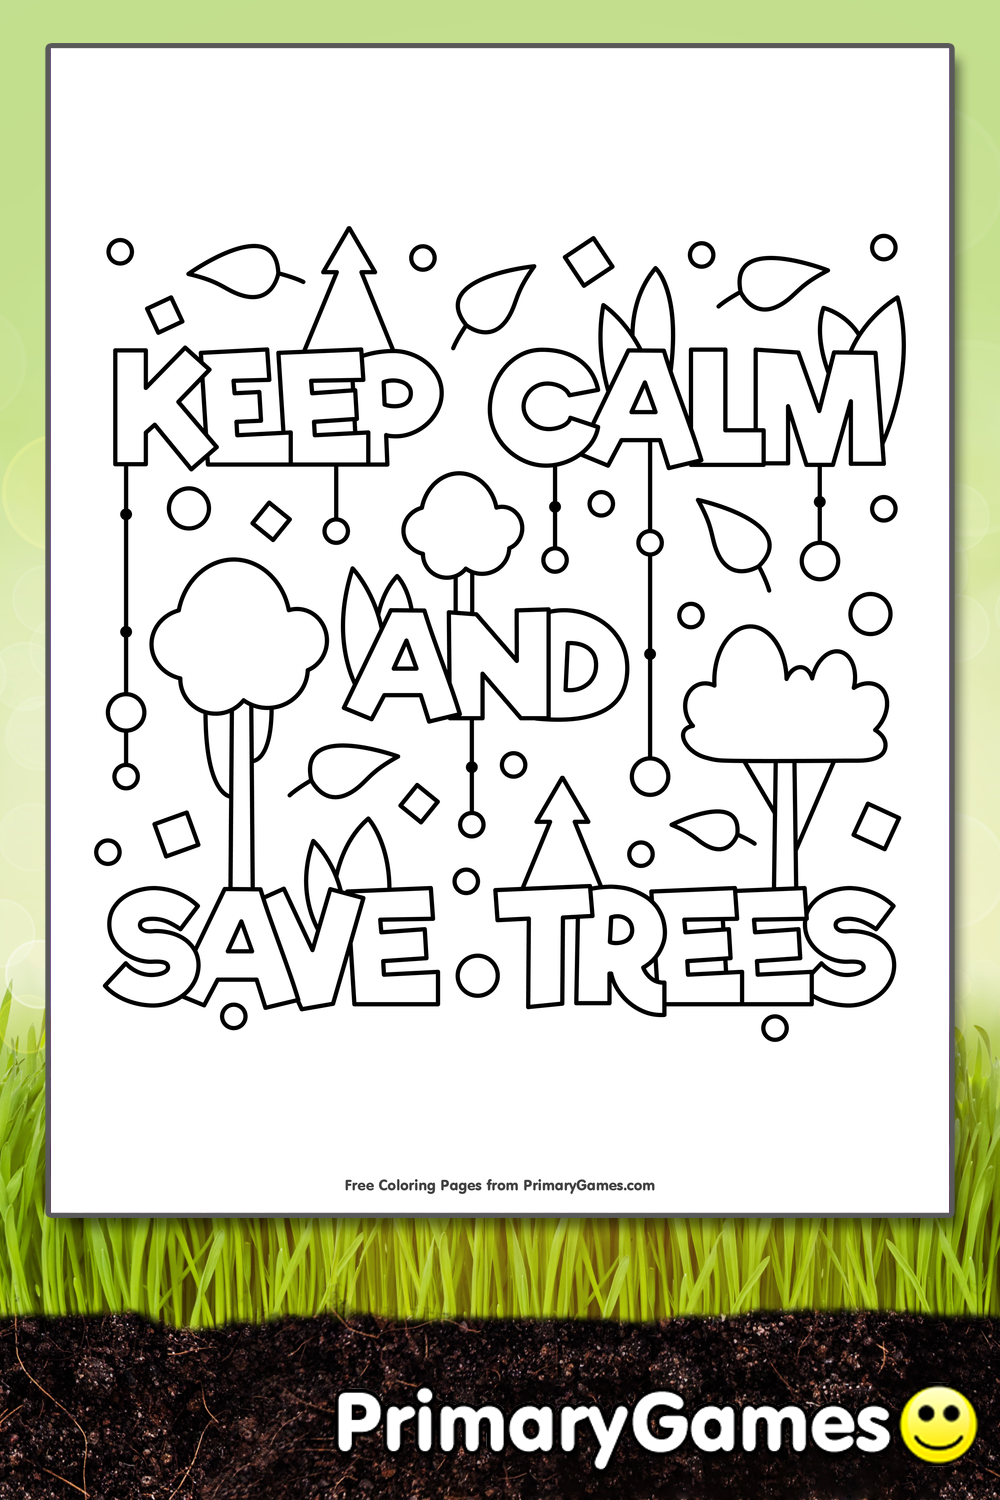 keep calm and save trees coloring page